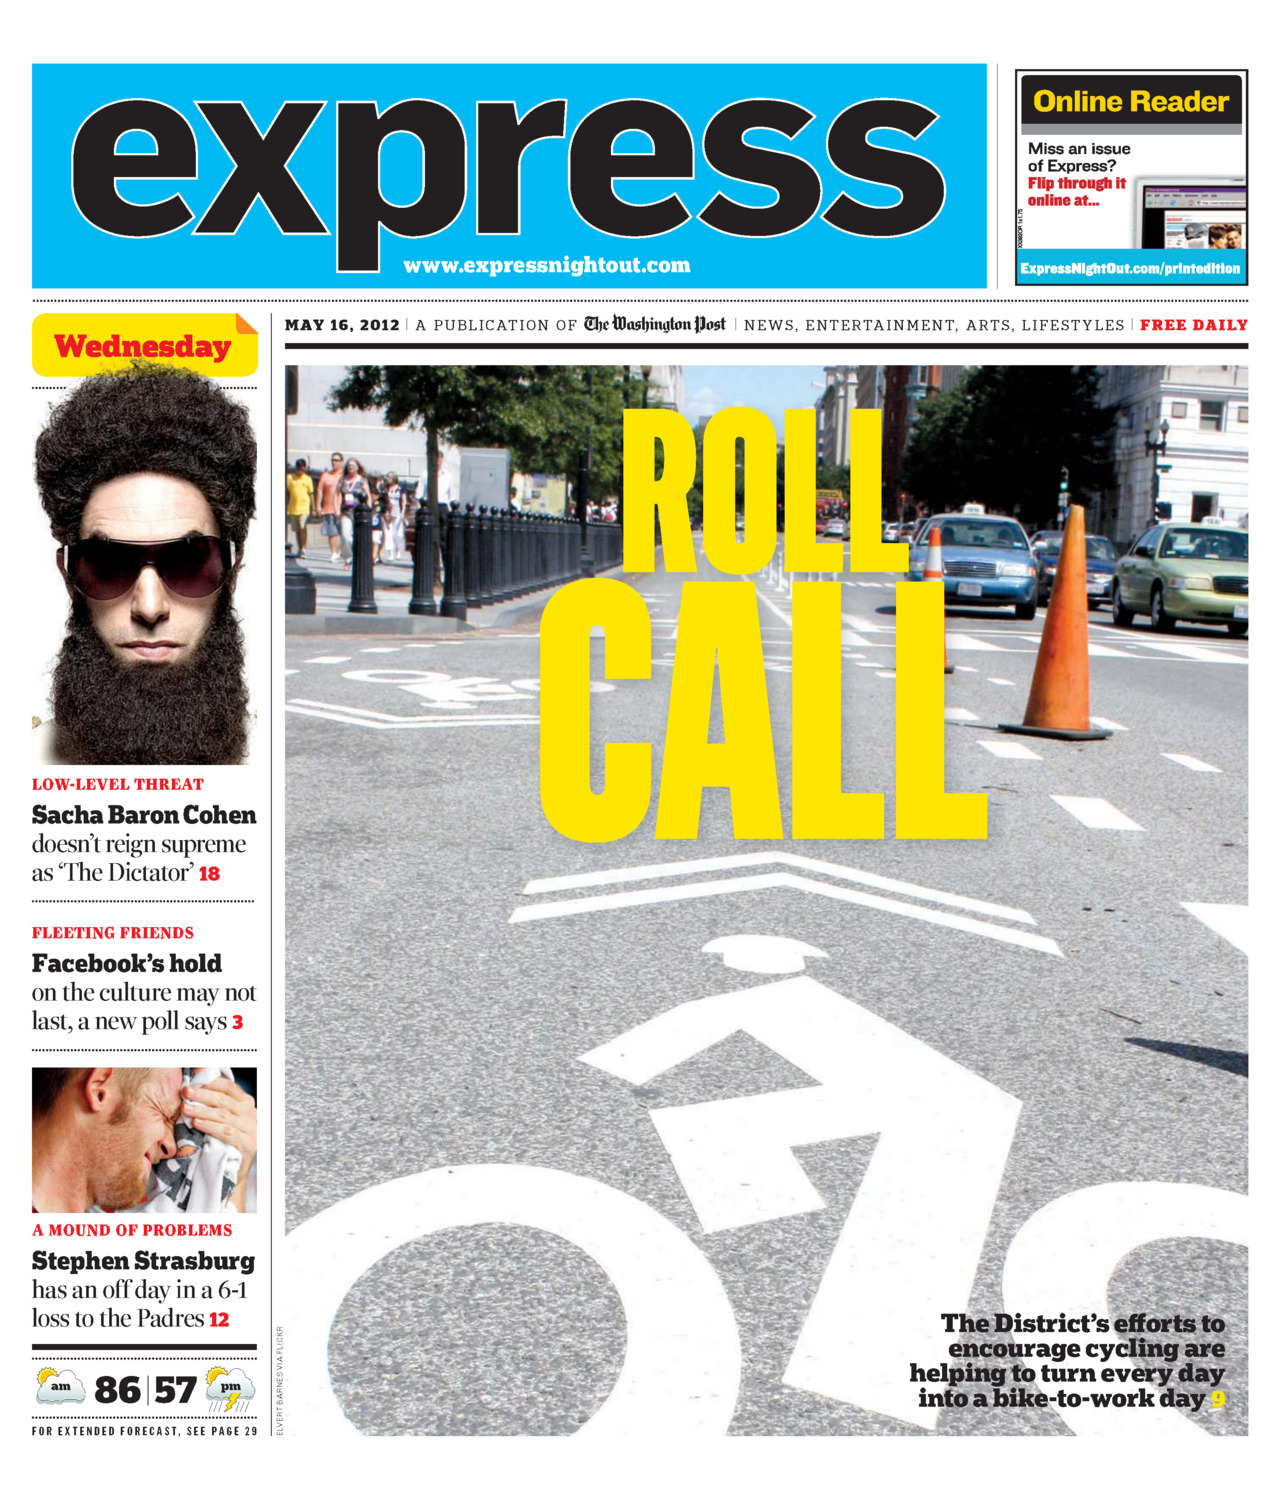 Express ran its first-ever staff-written (non-AP, non-Post) cover story yesterday. All rejoice! Vicky Hallett wrote about how D.C. is fast becoming a biking town.